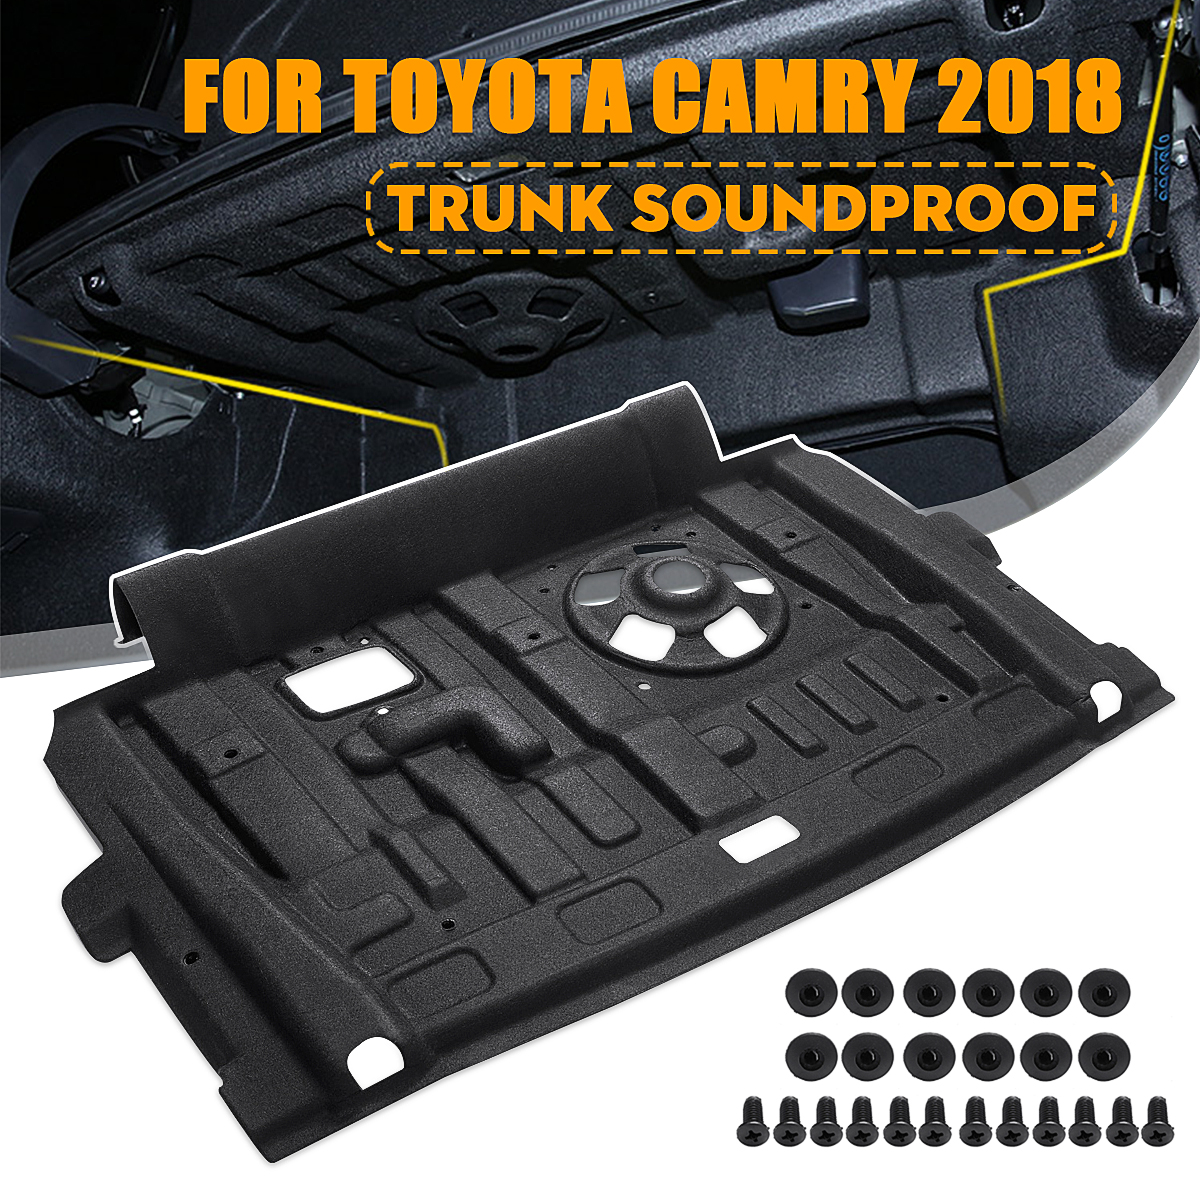 Car Rear Trunk Soundproof Cotton Mat Sound Proof Deadening Protective Mat Cover For Toyota Camry 2018 Car Accessories